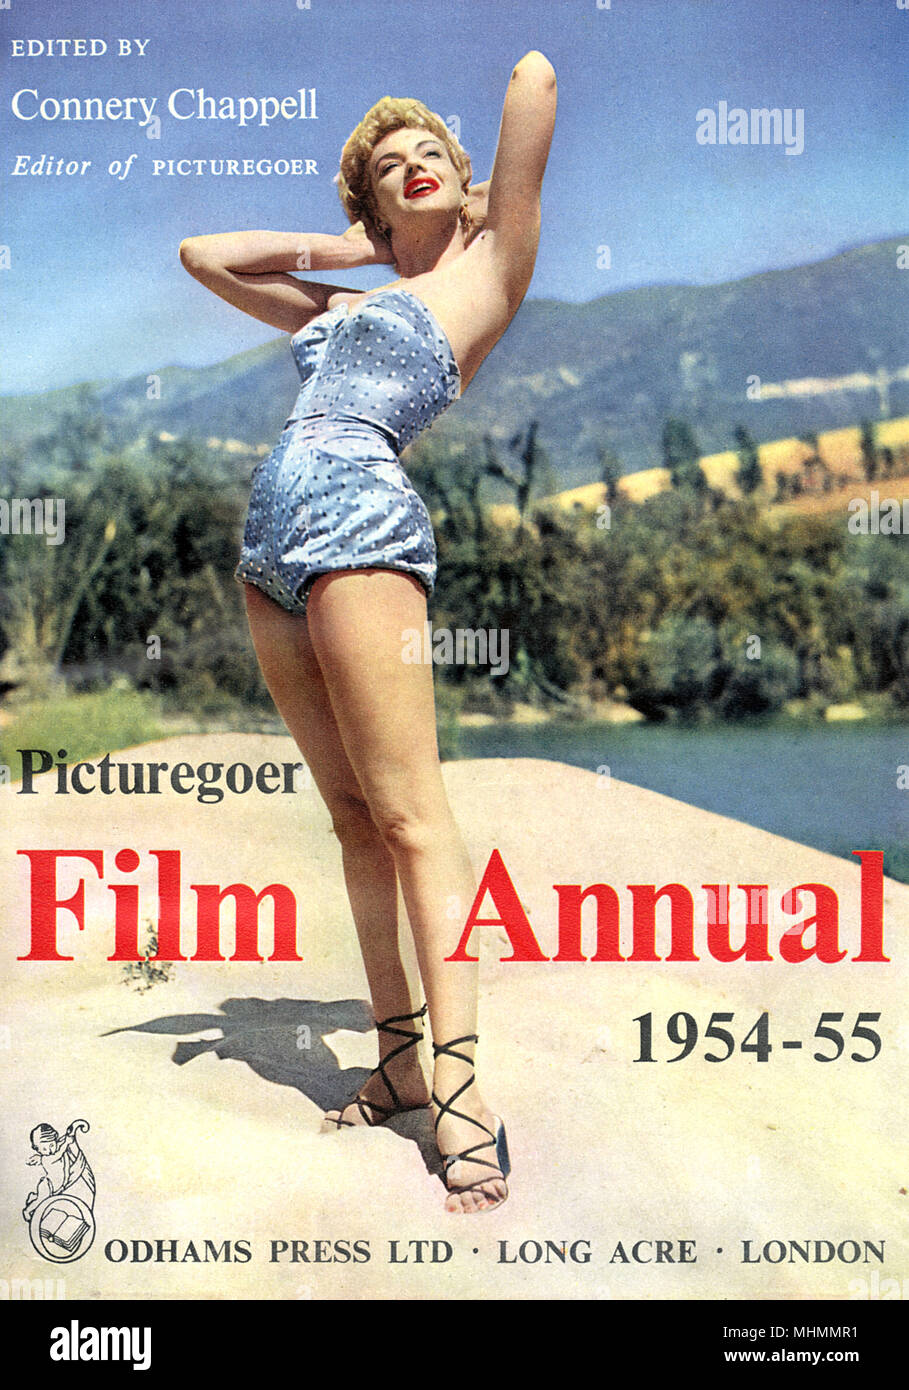 Cover of the Picturegoer Film Annual, 1954-55, edited by Connery Chappell     Date: 1944-1955 - Stock Image